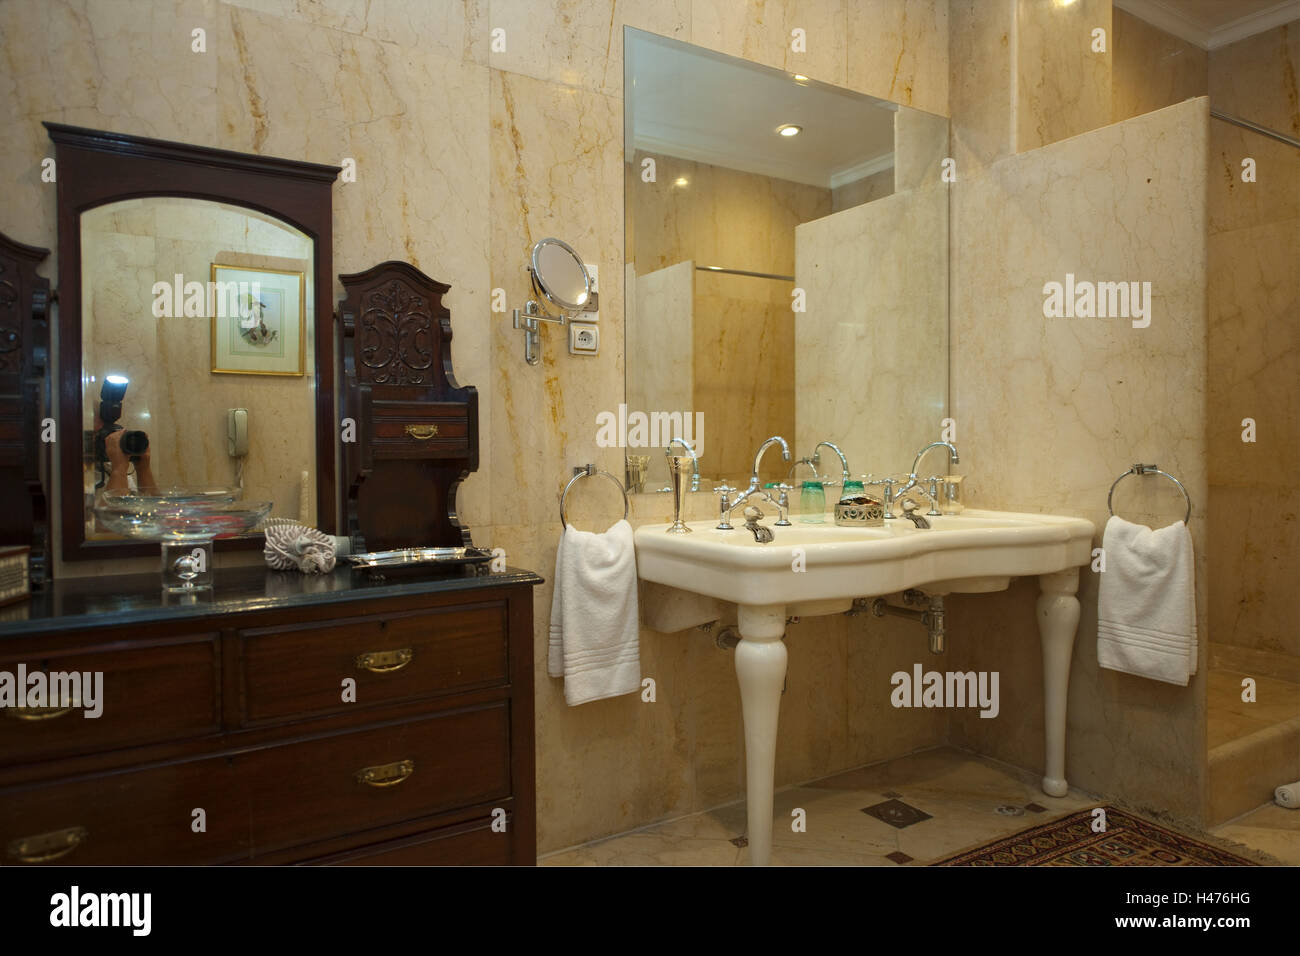 Egypt Luxor Sofitel Winter Palace Traditional Five Star Hotel The British Colonial Age Bath In One Suites